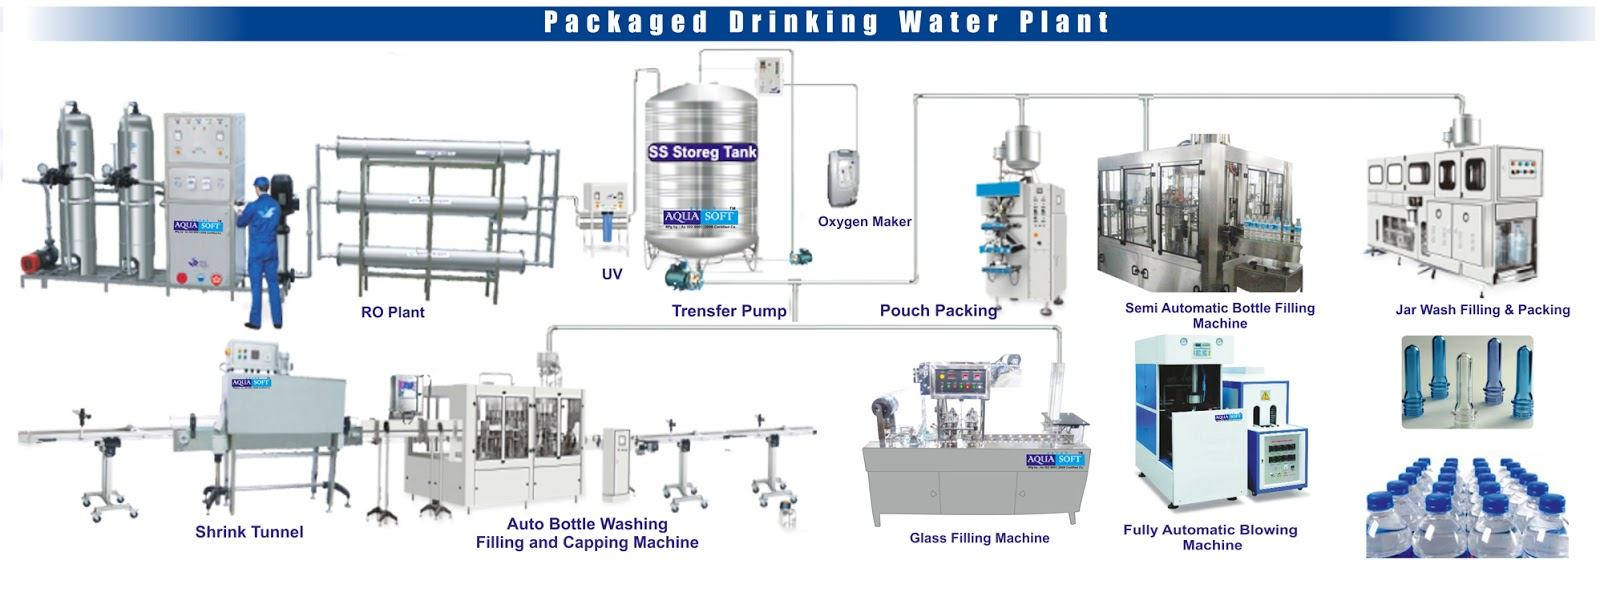 project report on packaged drinking water plant essay Railneer plant, nangloi: northern  e-commerce and packaged drinking water and is gearing up to excelin its diversifiedrole  essay competitions,.